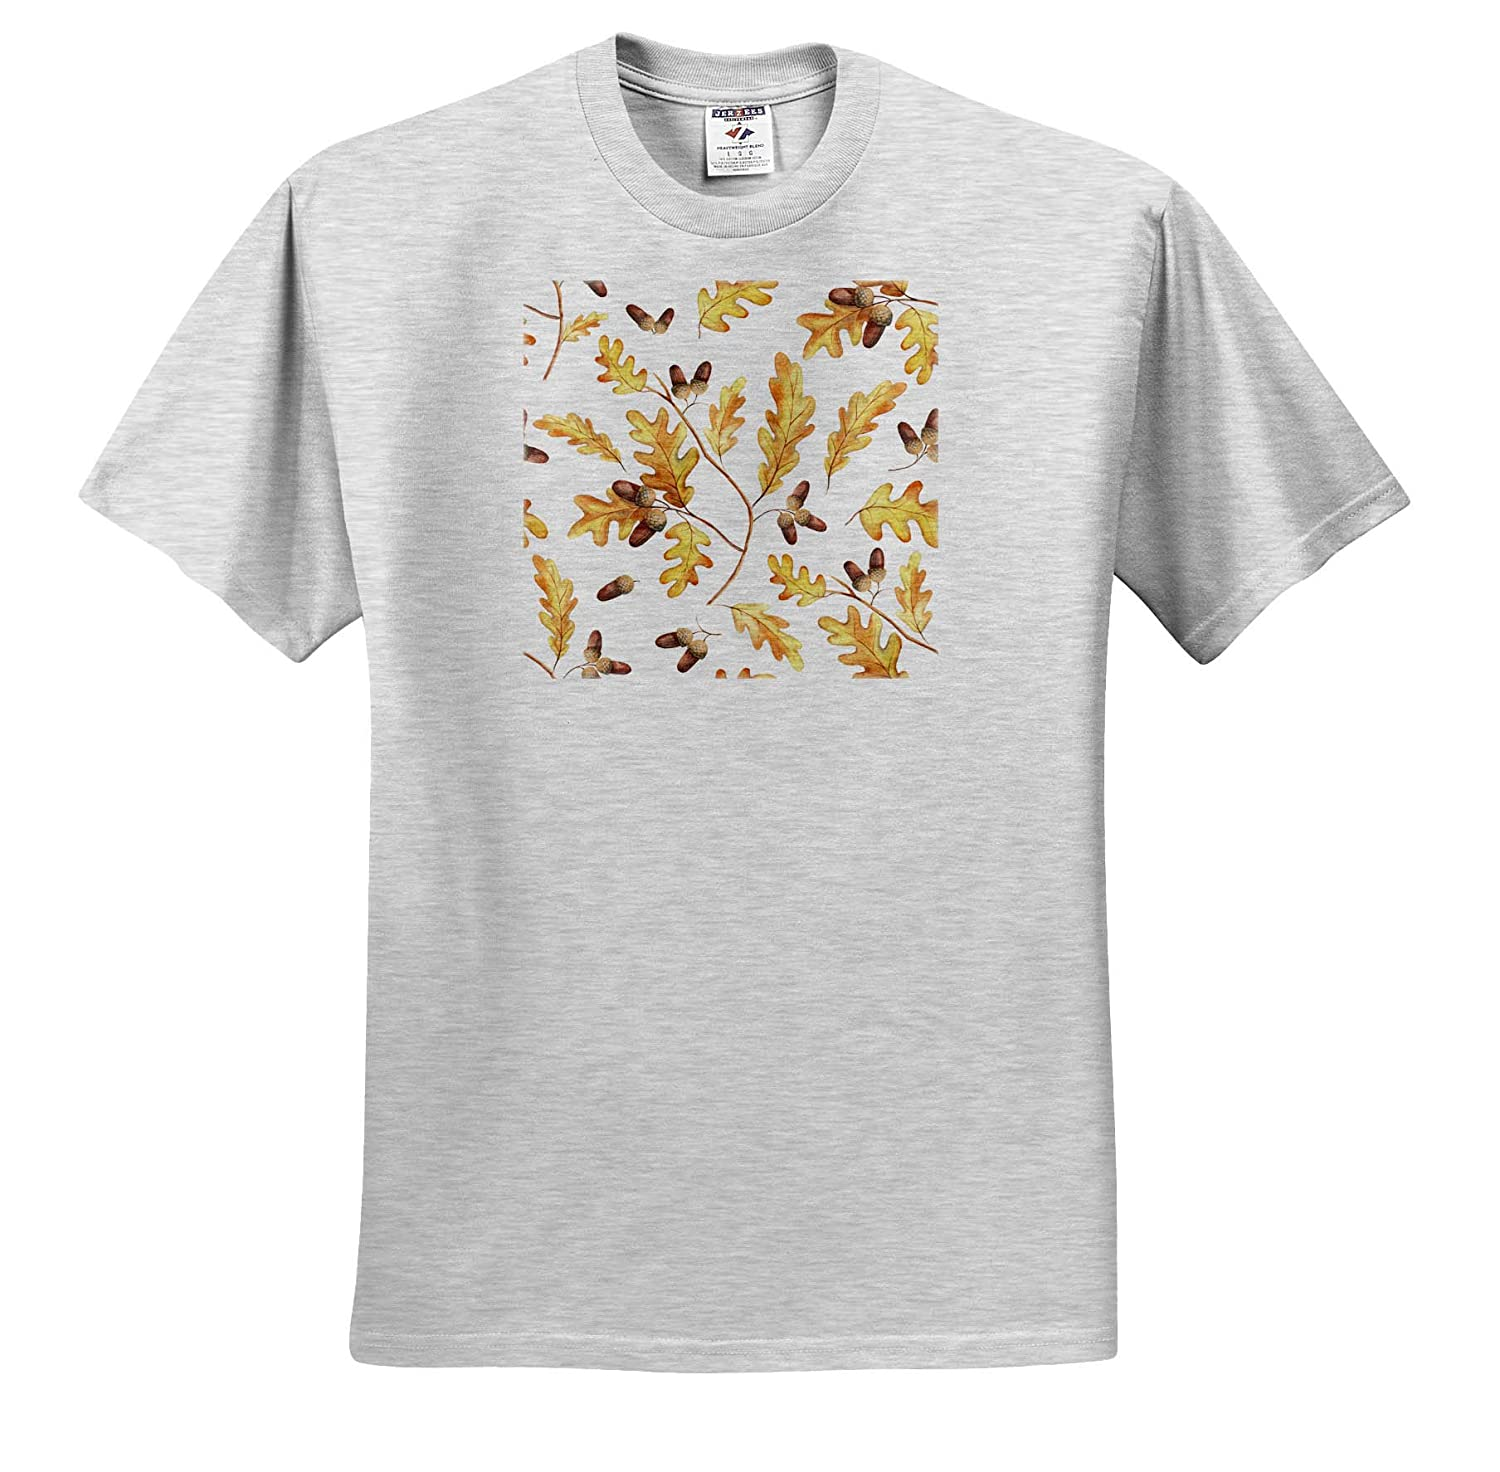 Beautiful Pattern of Oak Leaves and Acorns on White Background T-Shirts Pattern Autumn 3dRose Alexis Design